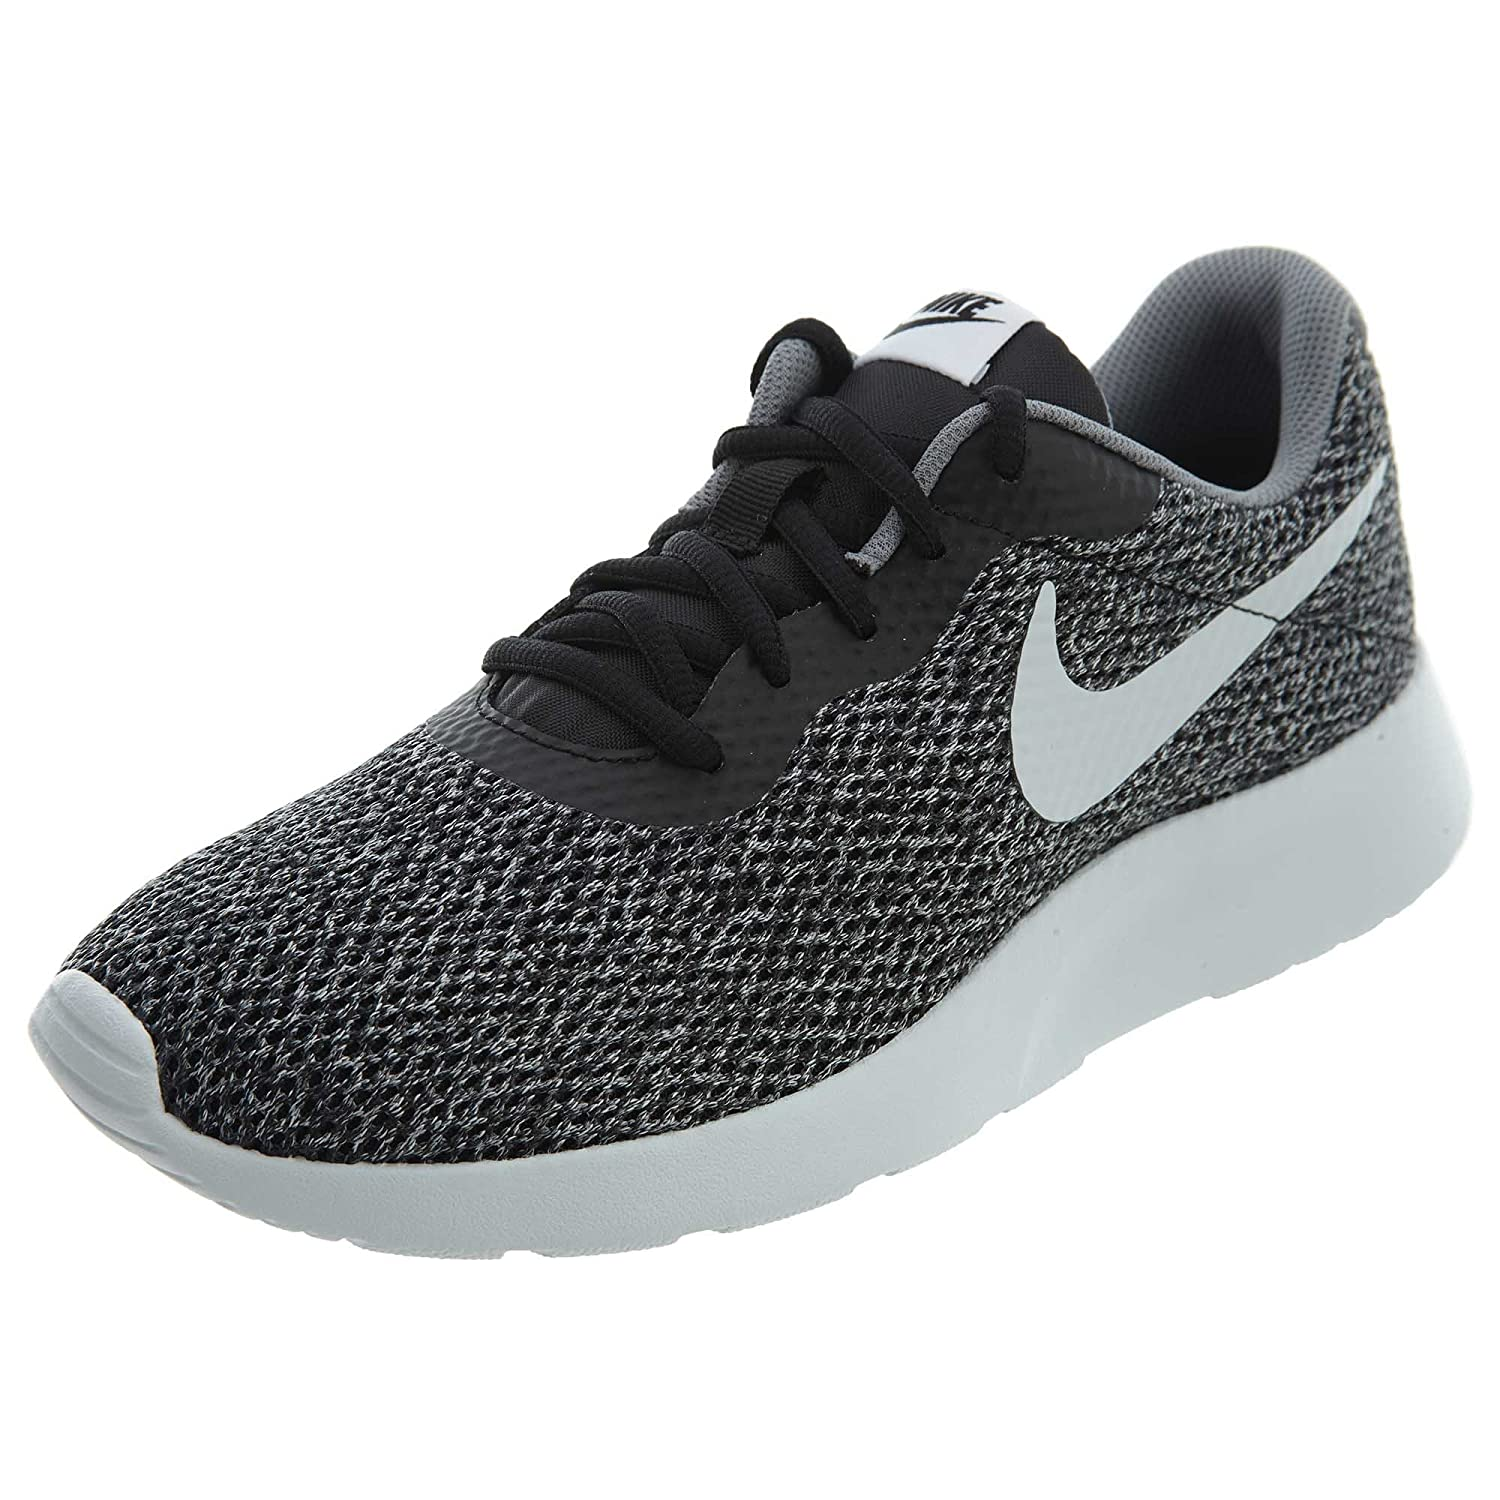 NIKE Men's Tanjun Sneakers, Breathable Textile Uppers and Comfortable Lightweight Cushioning B078MVBXK1 9.5 D(M) US|Black/Pure Platinum/Cool Grey